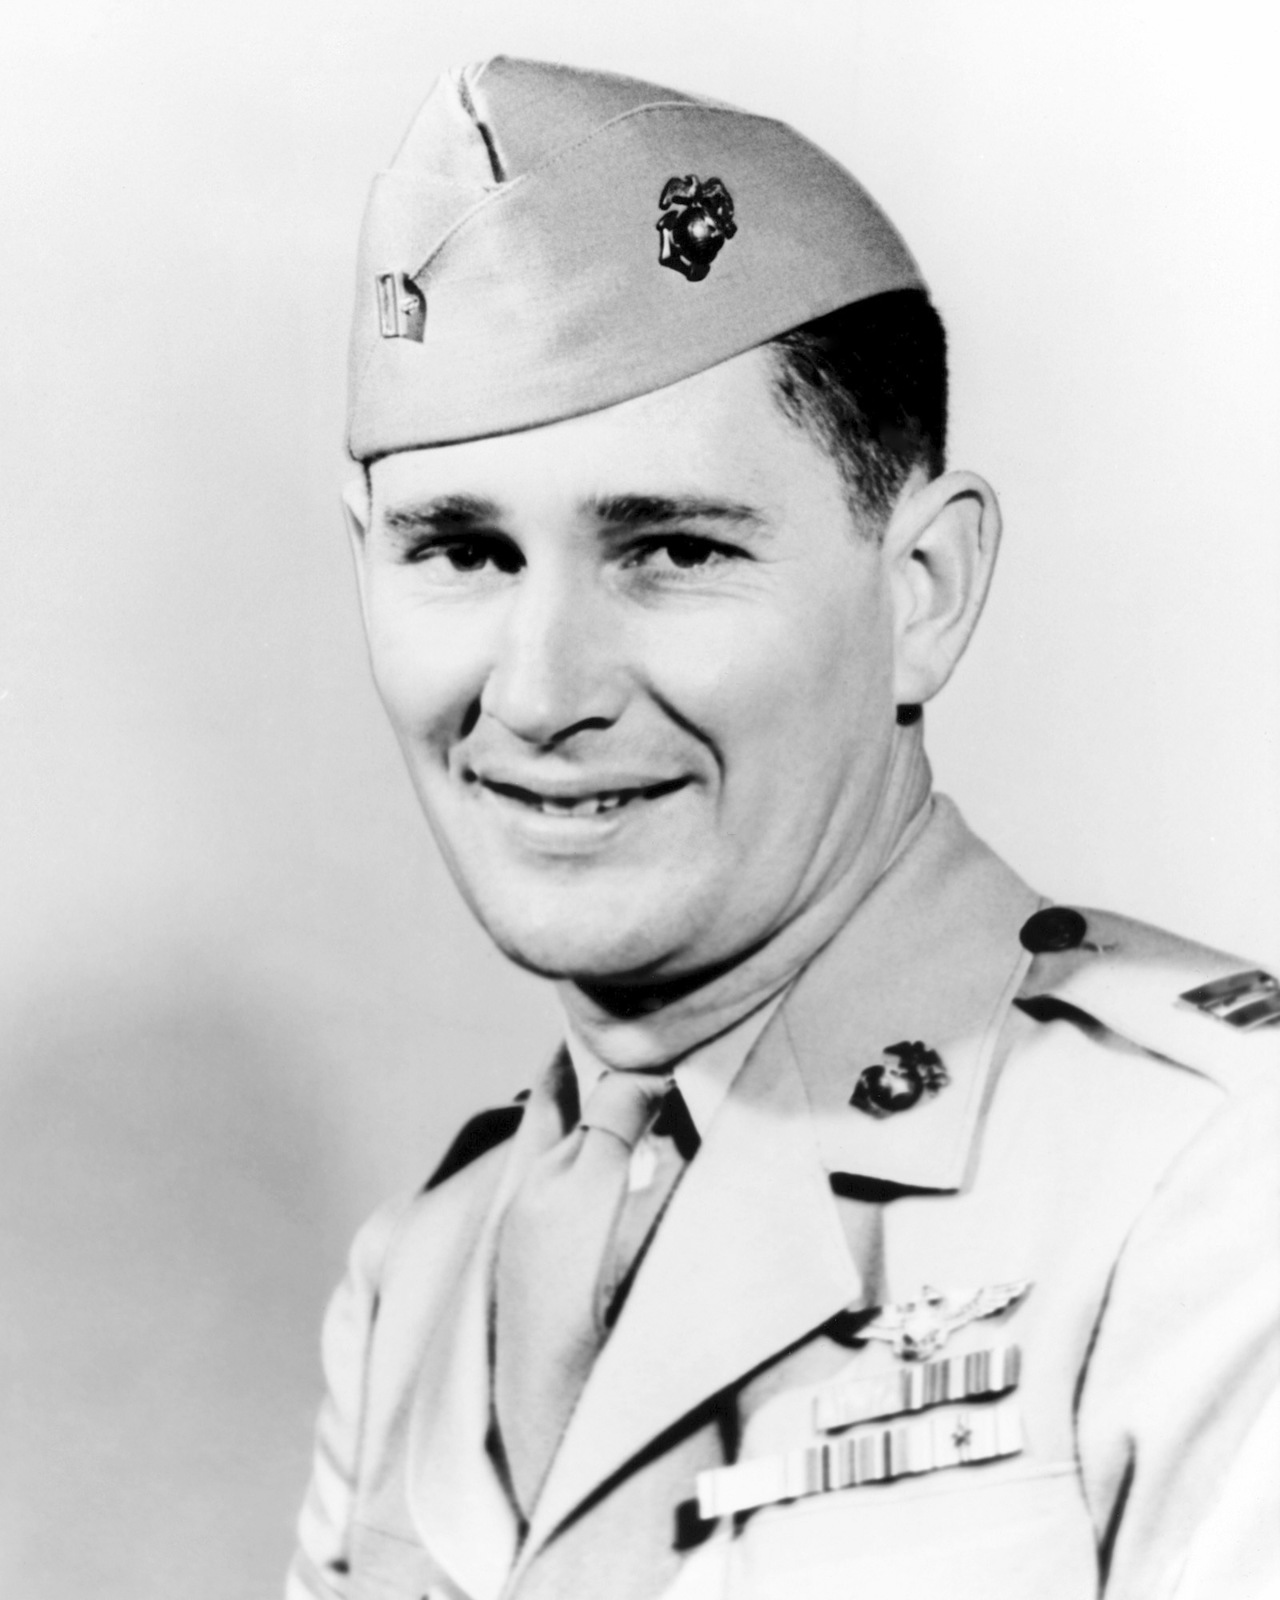 United States Marine Corps Captain (CPT) Joseph Jacob Foss, is shown wearing the highly prized Medal of Honor bestowed upon him by President Roosevelt for outstanding gallantry against the Japanese in the Solomons. Official Portrait